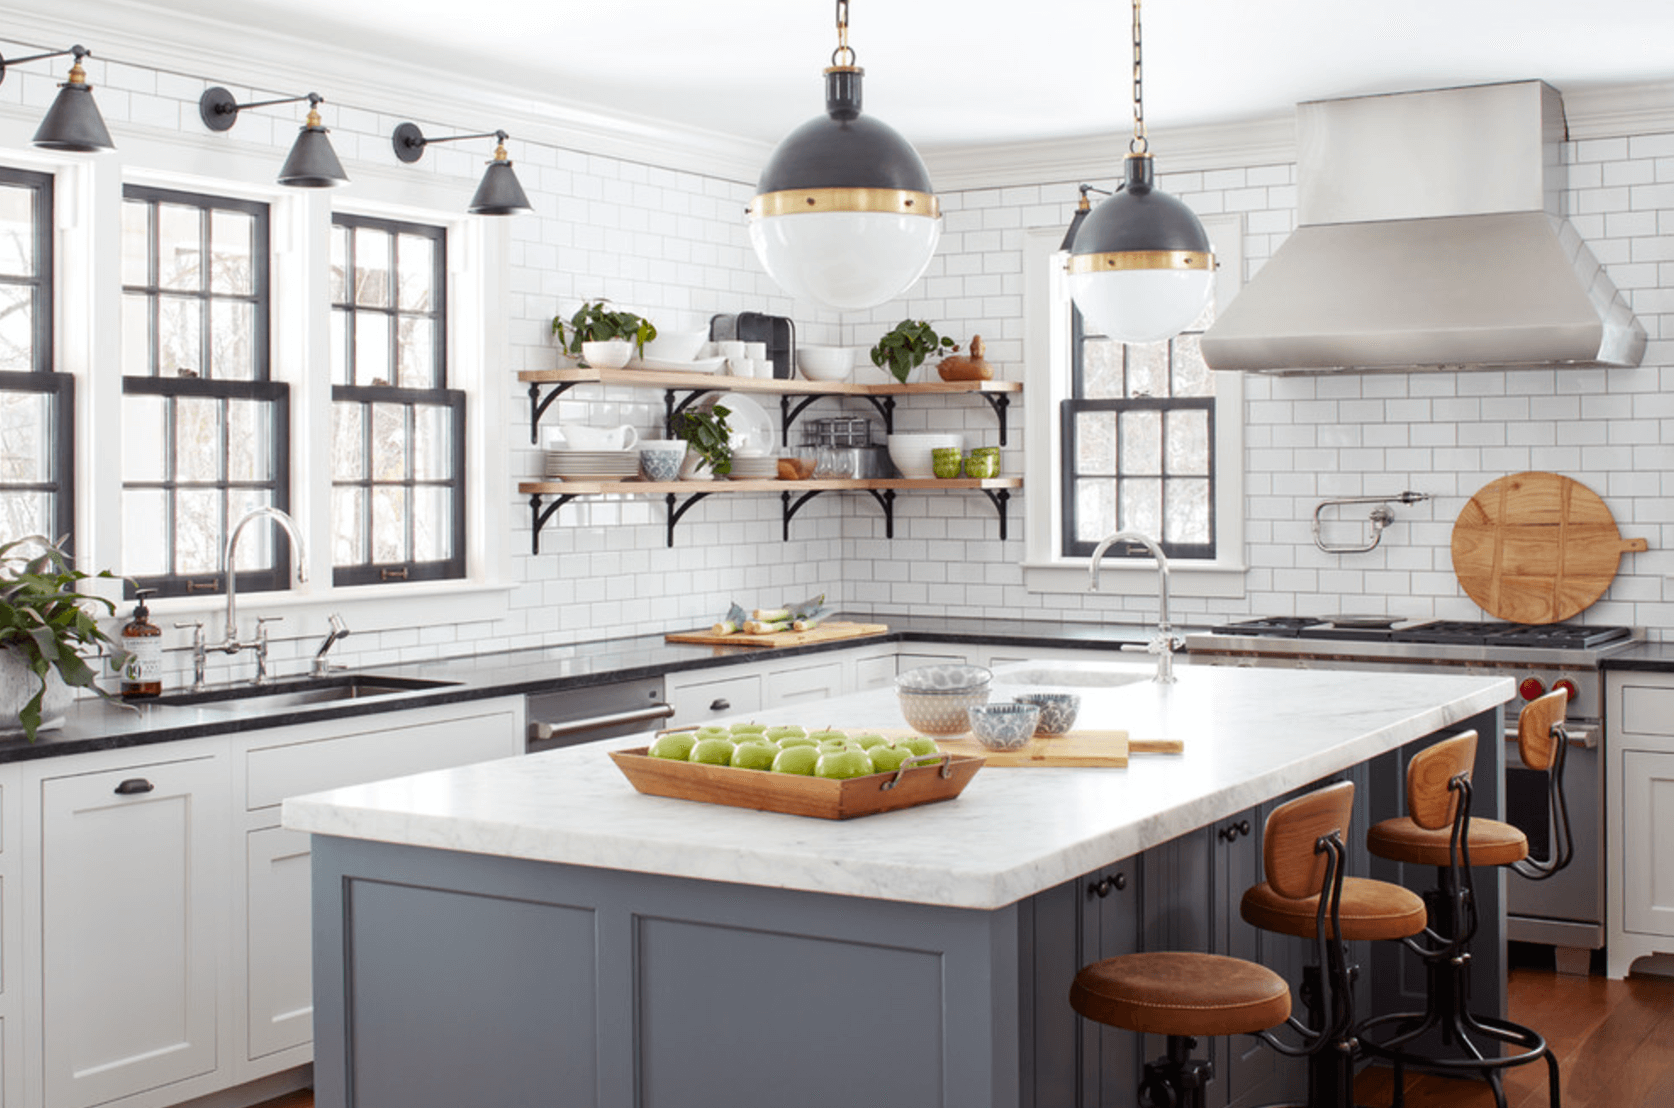 5 Ways To Update Your Kitchen When You Cannot Renovate